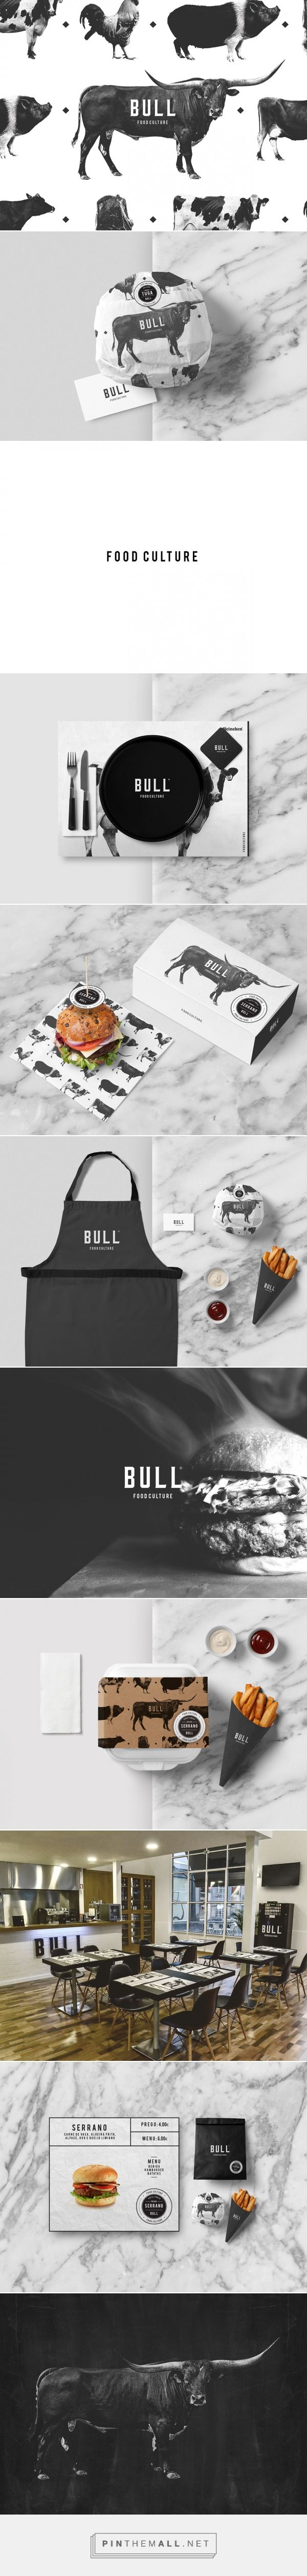 BULL - Food Culture packaging design by BULLSEYE (Portugal) - http://www.packagingoftheworld.com/2016/07/bull-food-culture.html